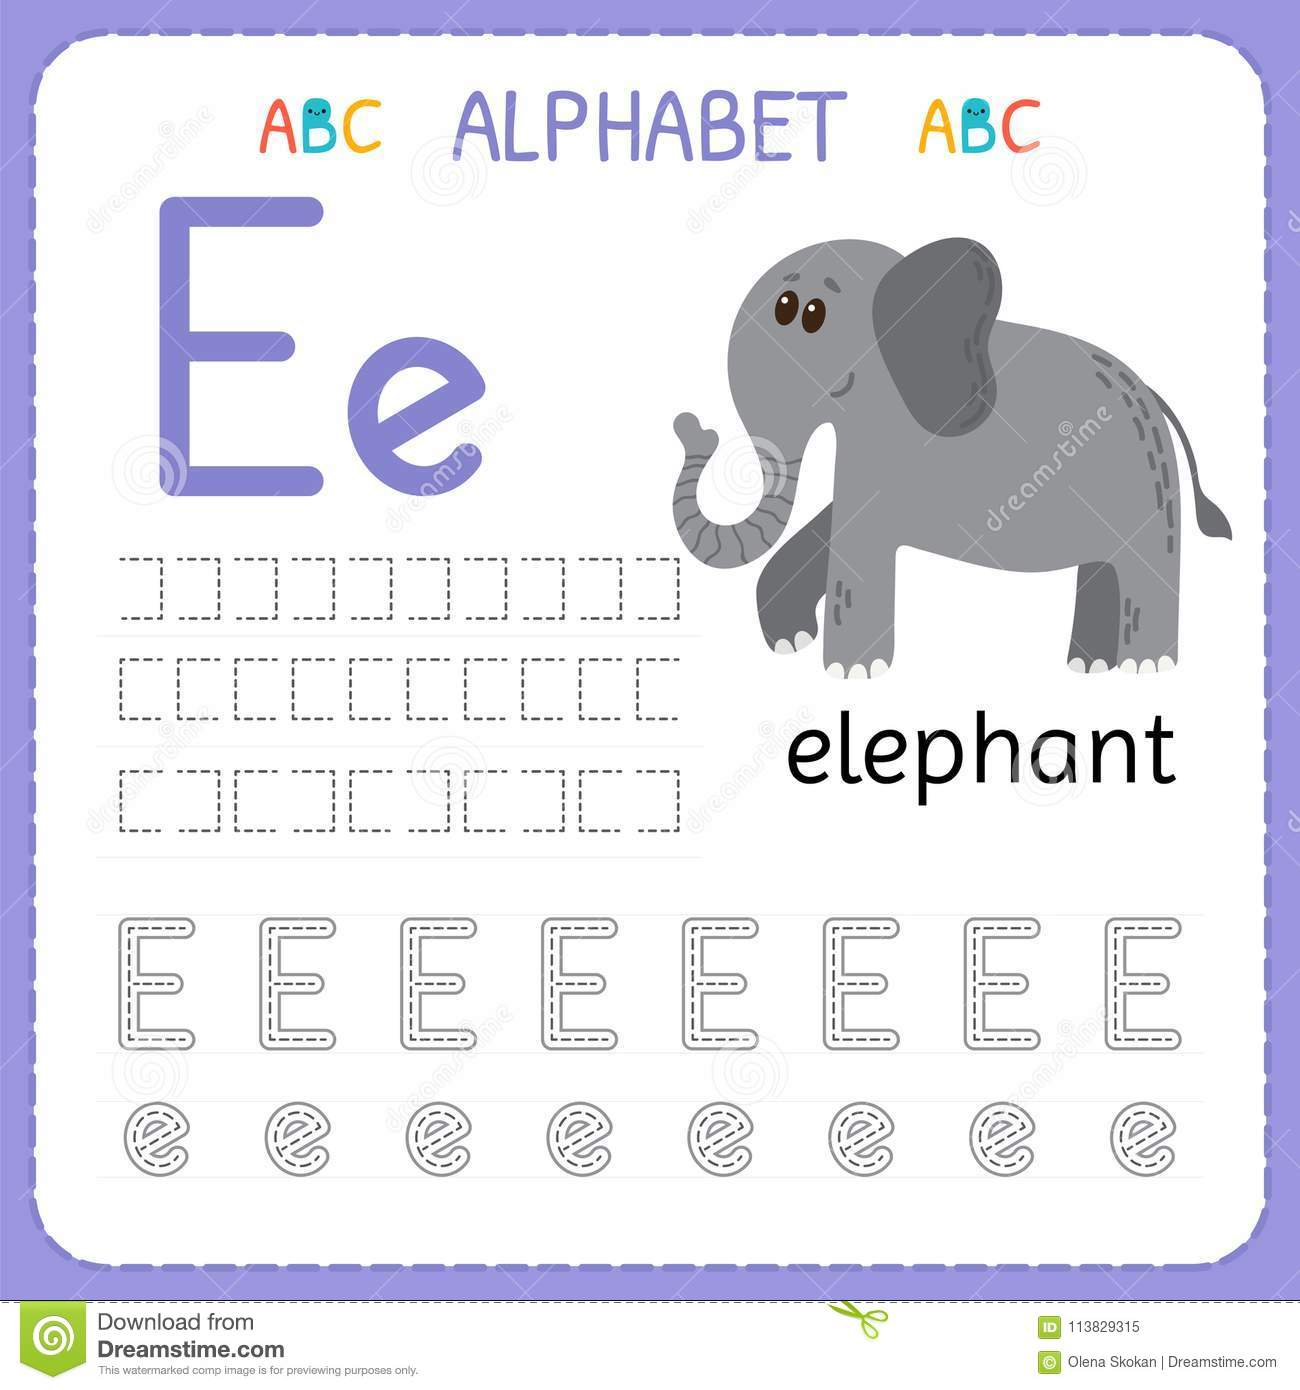 Alphabet Tracing Worksheet For Preschool And Kindergarten Writing Practice Letter E Exercises